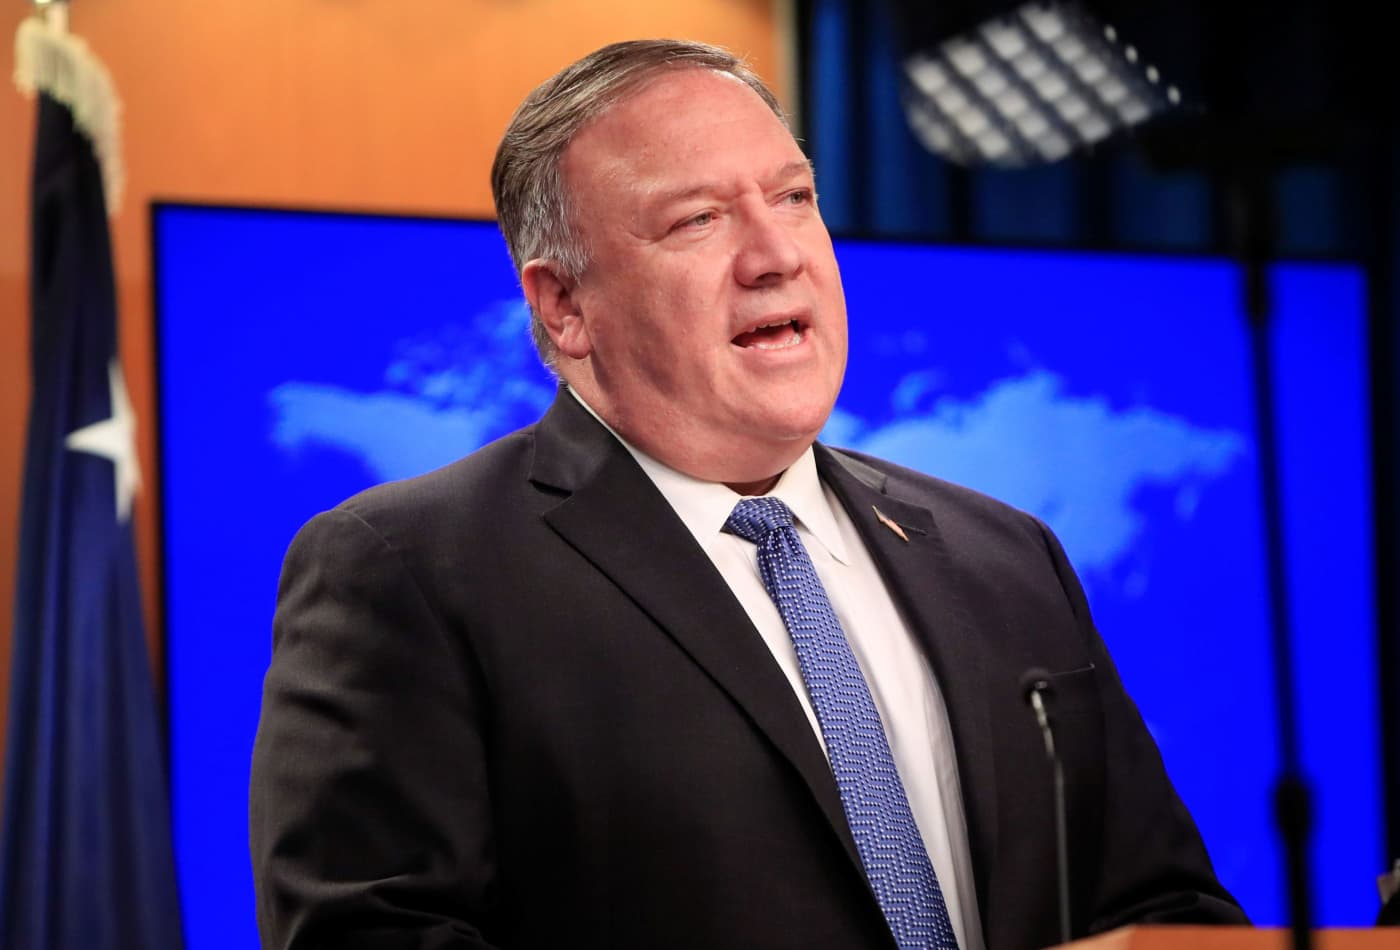 Trump administration wants to see 'untrusted' Chinese apps like TikTok and WeChat removed from U.S. app stores, Pompeo says